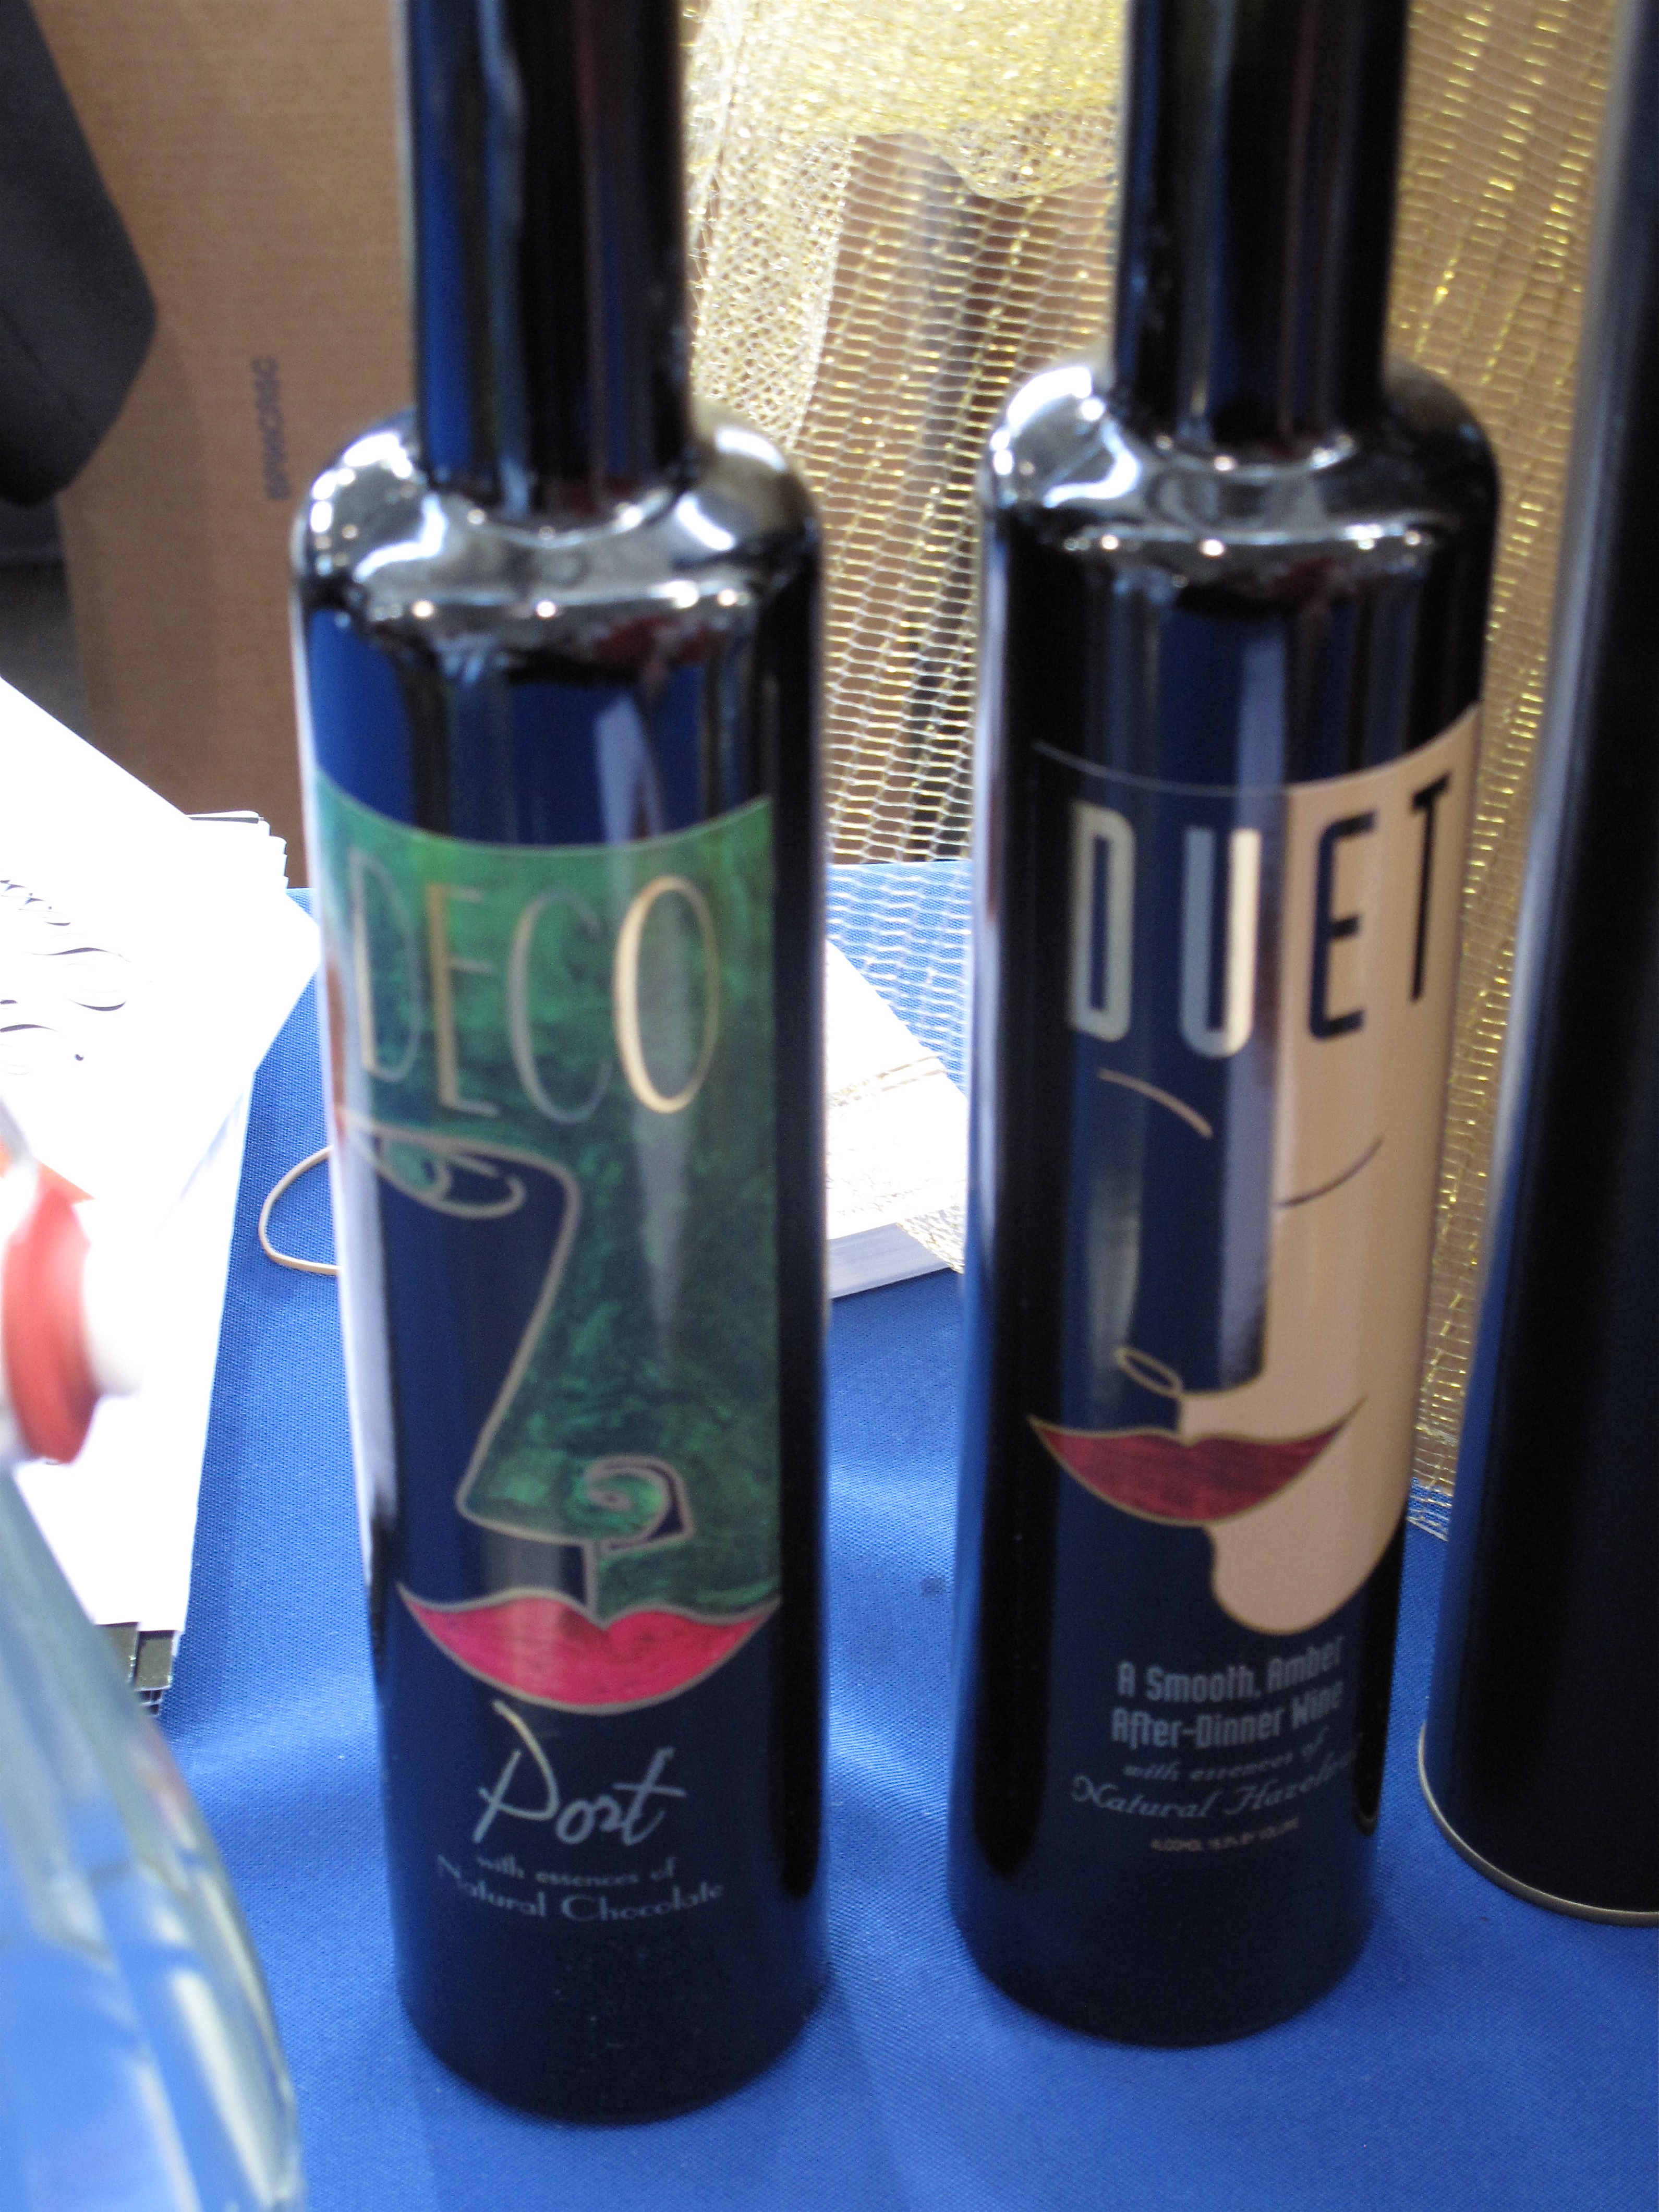 Despite the cheesy wine labels, I was a fan of the Deco Port wines that were being poured with chocolate.<br />